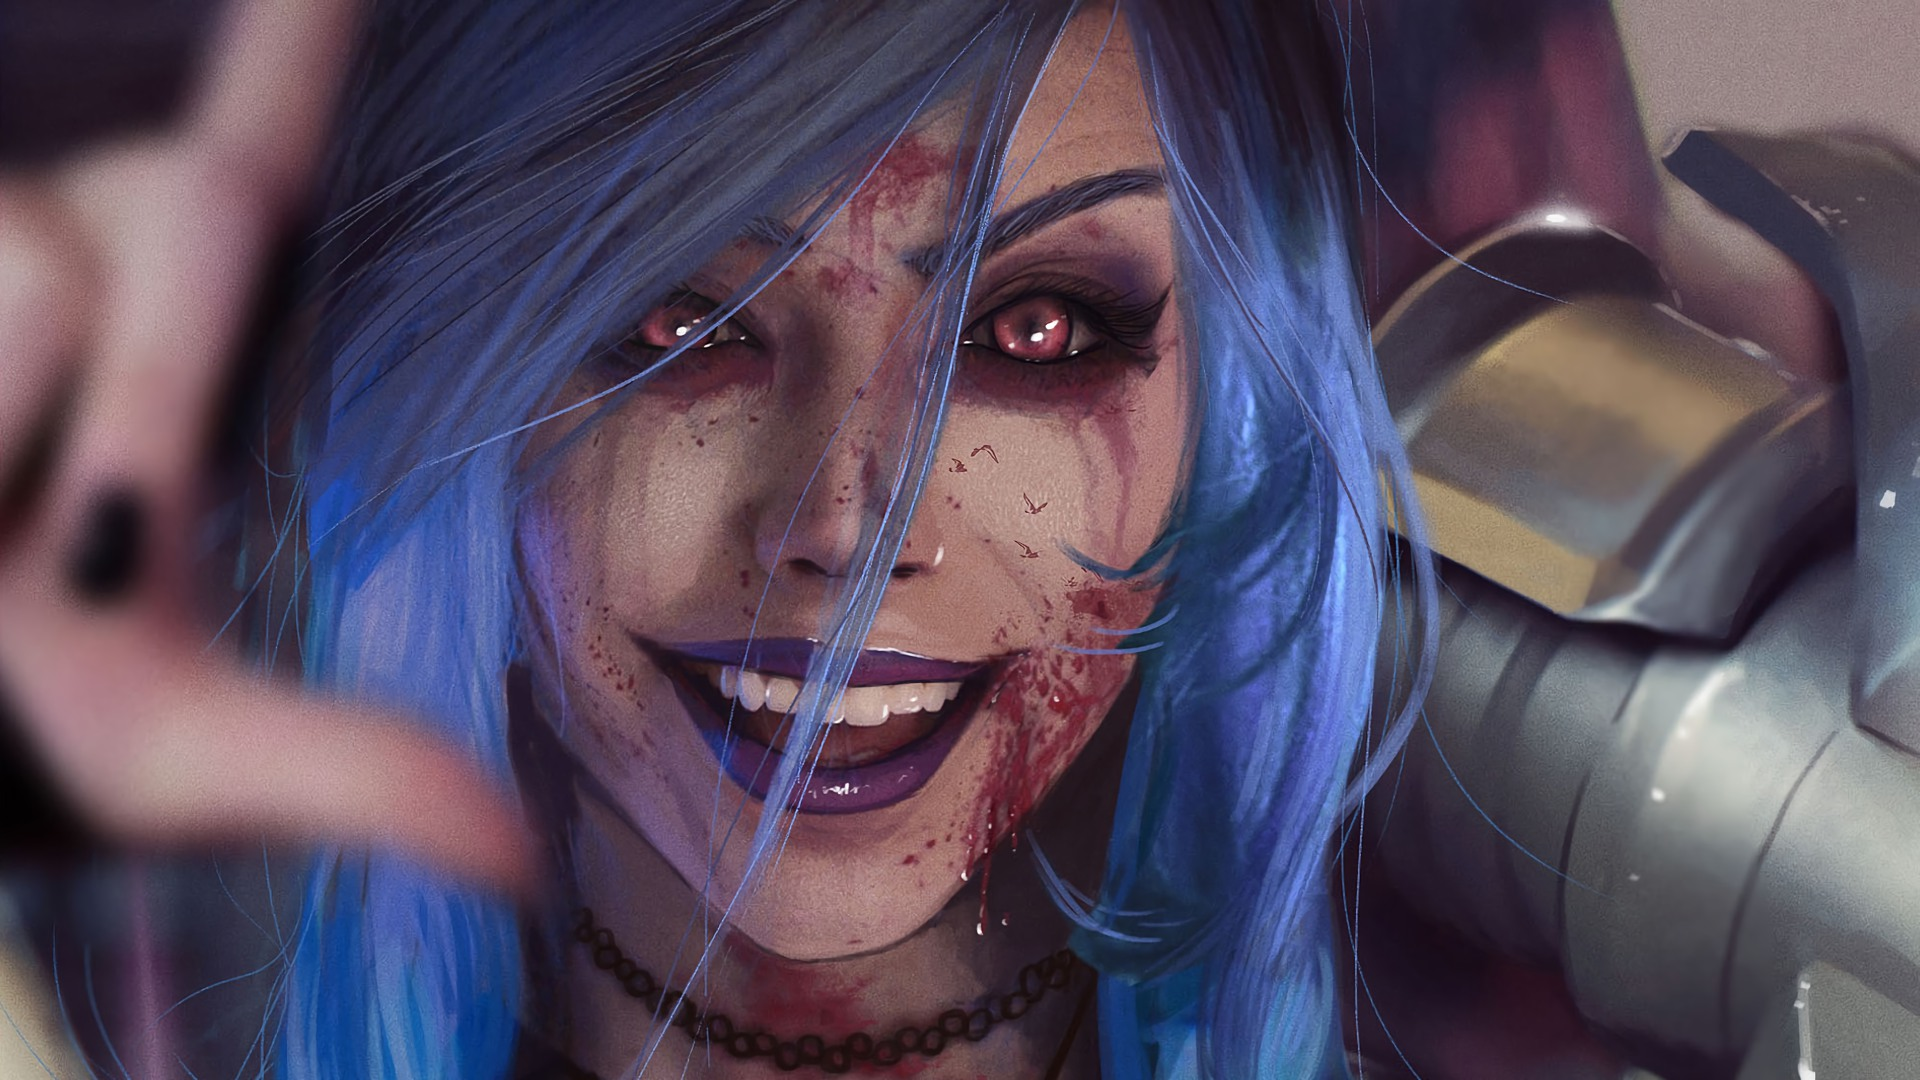 Wallpaper search keywords & Jinx, League of Legends, Video Game, Girls ...